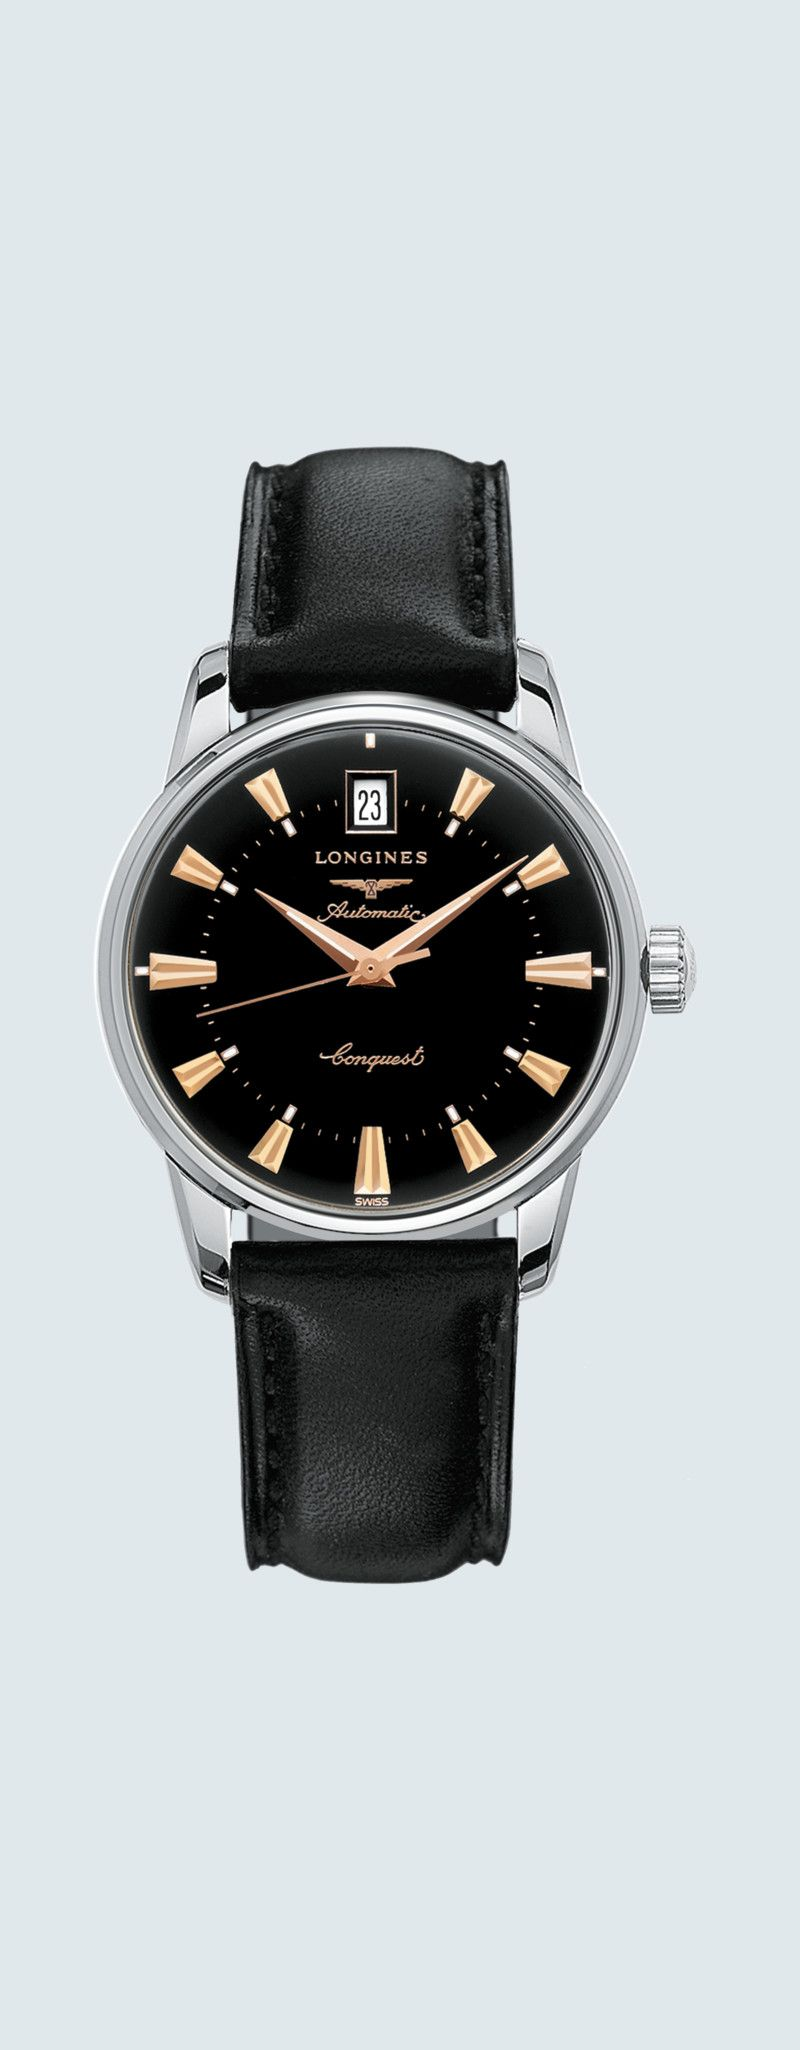 35.00 mm Stainless steel case with Black lacquered polished dial and Leather strap Black strap - ca